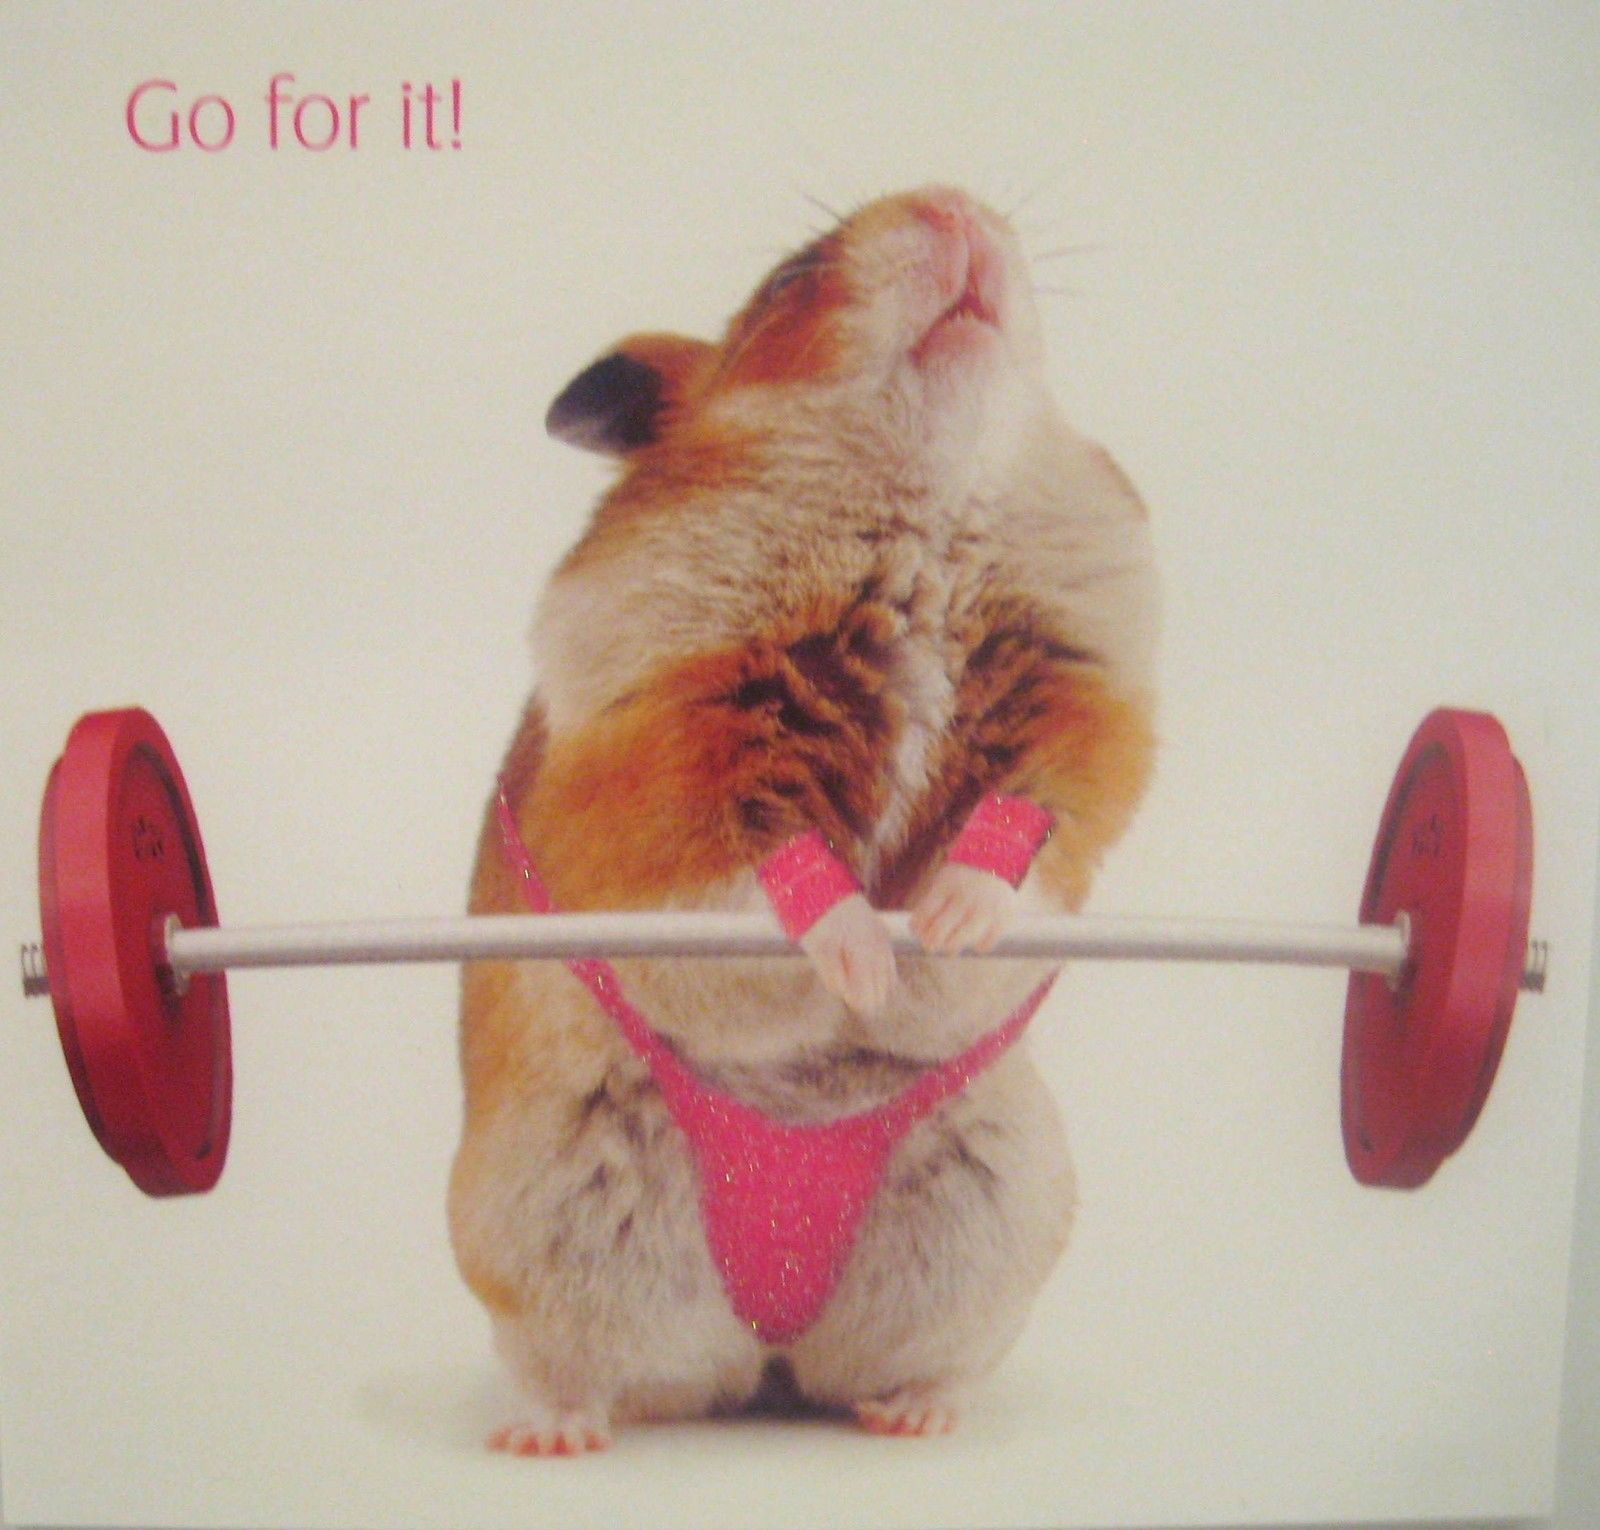 Funny Hamster Blank Greetings Card Weight Lifter Go For It